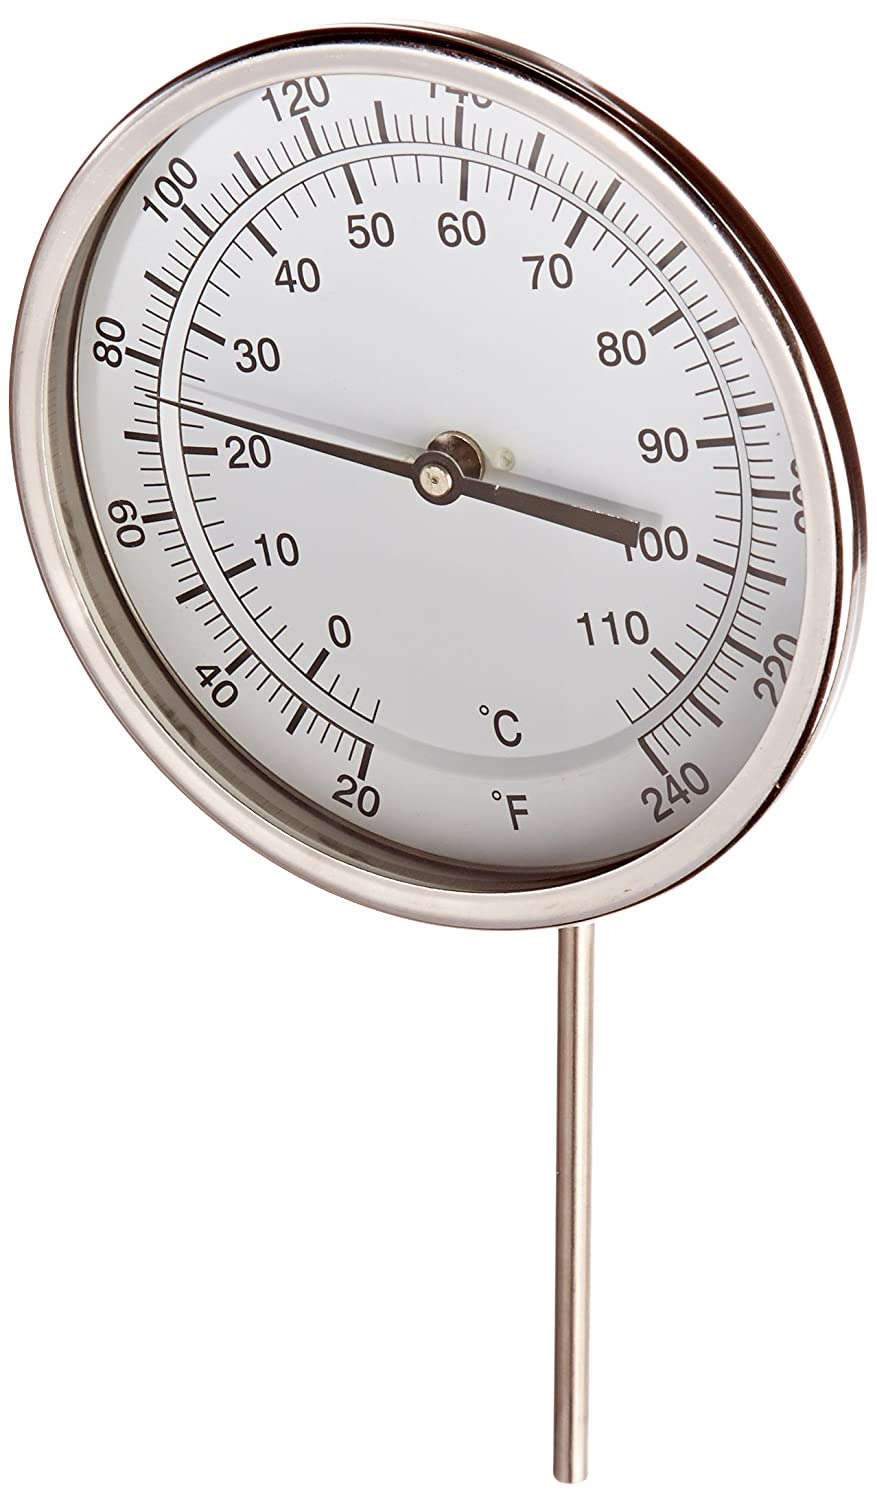 """20//240/°F and -7//116/°C 316 Stainless Steel Stem Bimetal Thermometer 6 Stem Length PIC Gauges Stainless Steel Case Adjustable Angle Connection PIC Gauge B5A6-JJ 5/"""" Dial Size 6 Stem Length"""